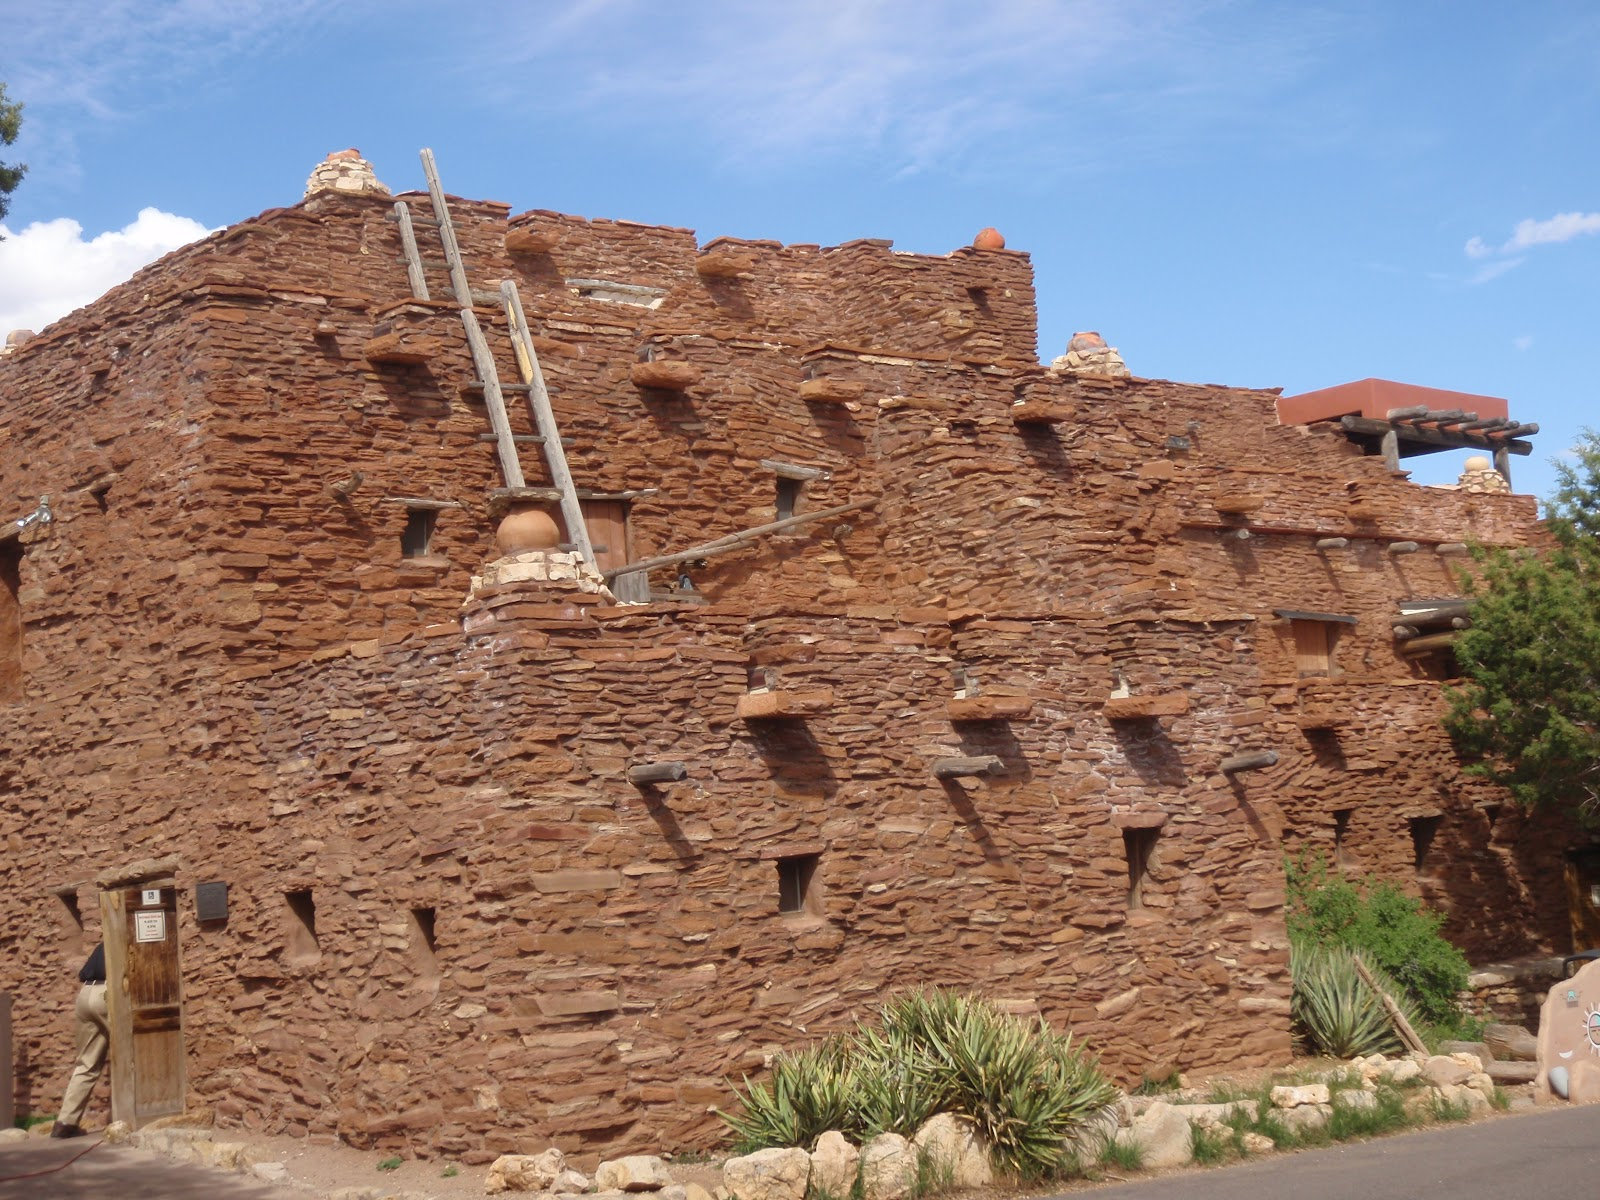 the hopi indians Hopi: hopi, the westernmost group of pueblo indians, situated in what is now northeastern arizona, on the edge of the painted desert they speak a northern uto-aztecan language the precise origin of the hopi is unknown, although it is thought that they and other pueblo peoples descended from the.